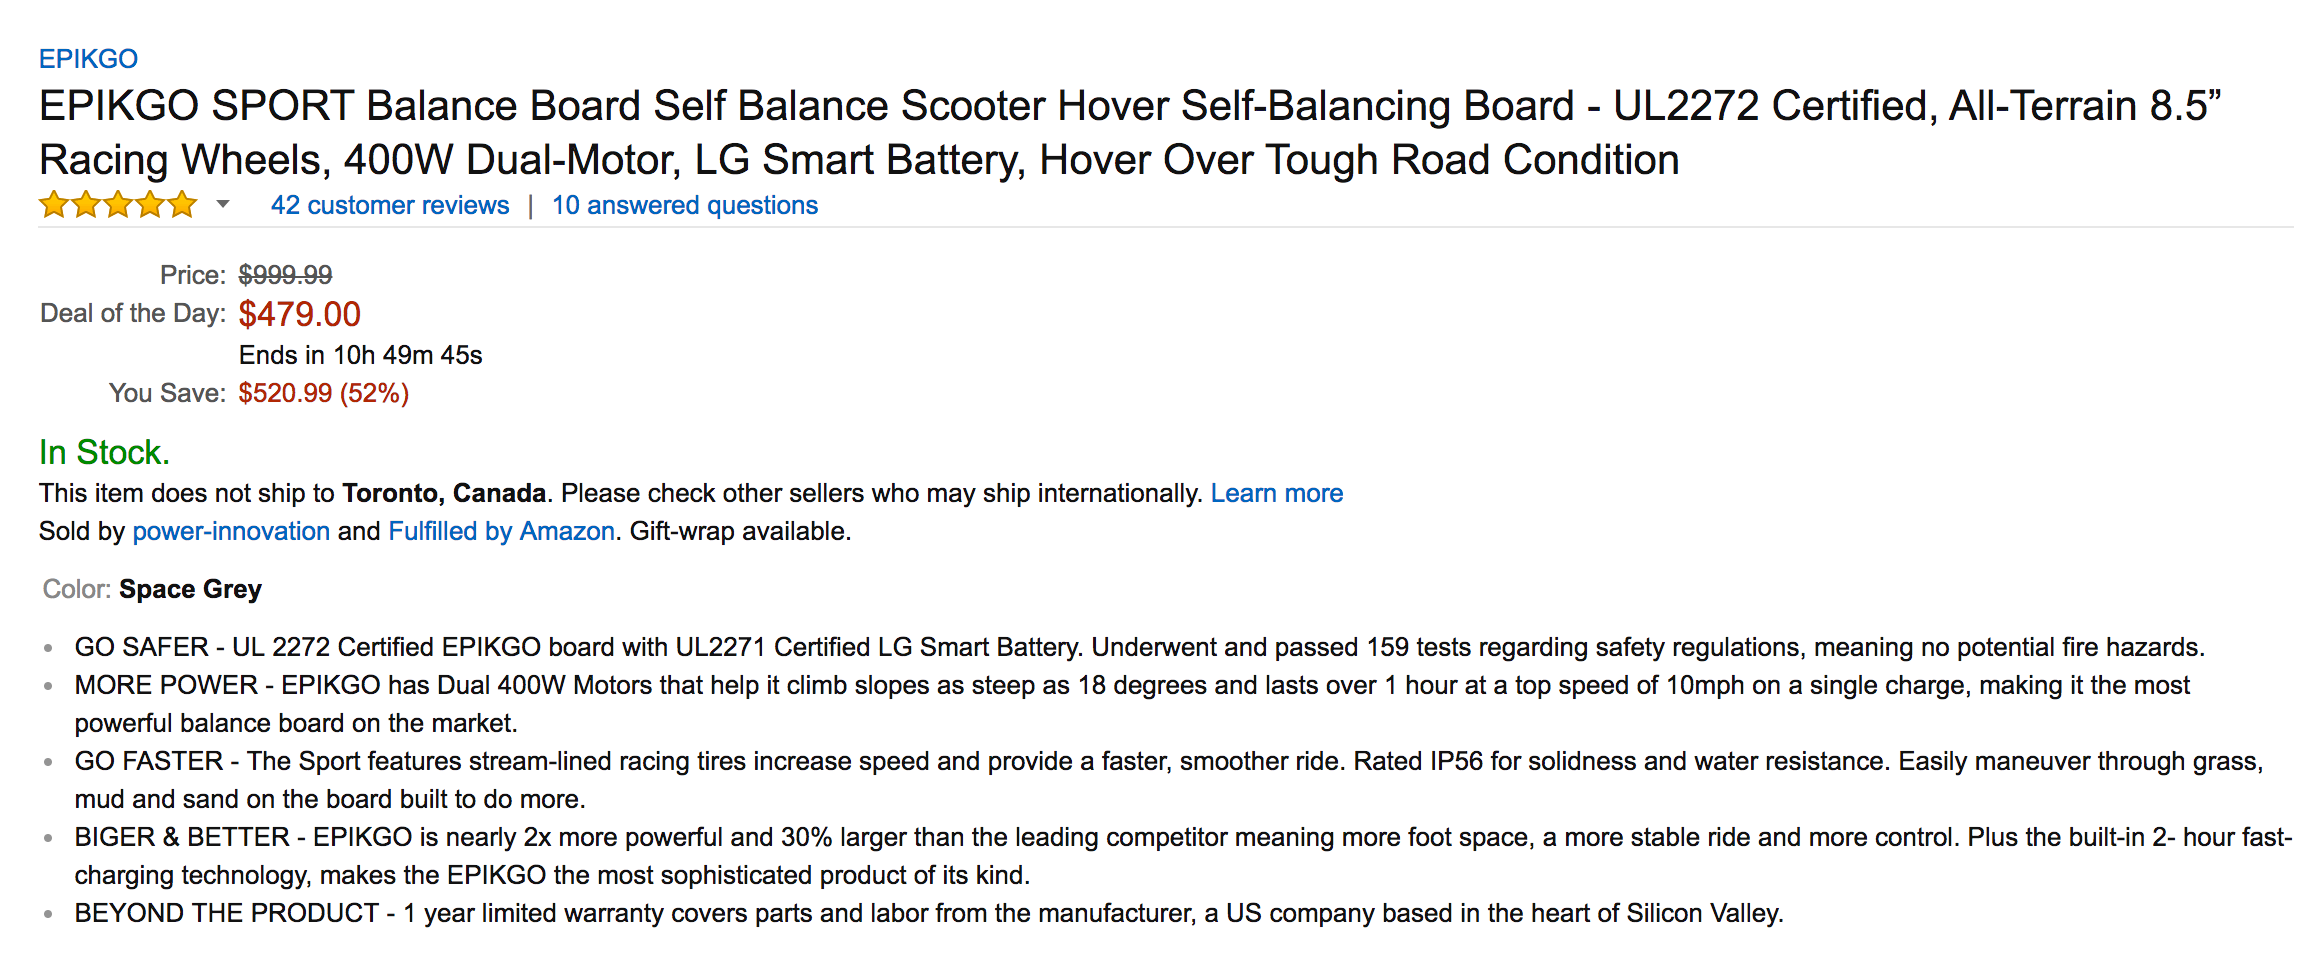 Why Walk If You Can Take A Hoverboard The Self Balancing Epikgo Go Balance Board Sport Sale 03